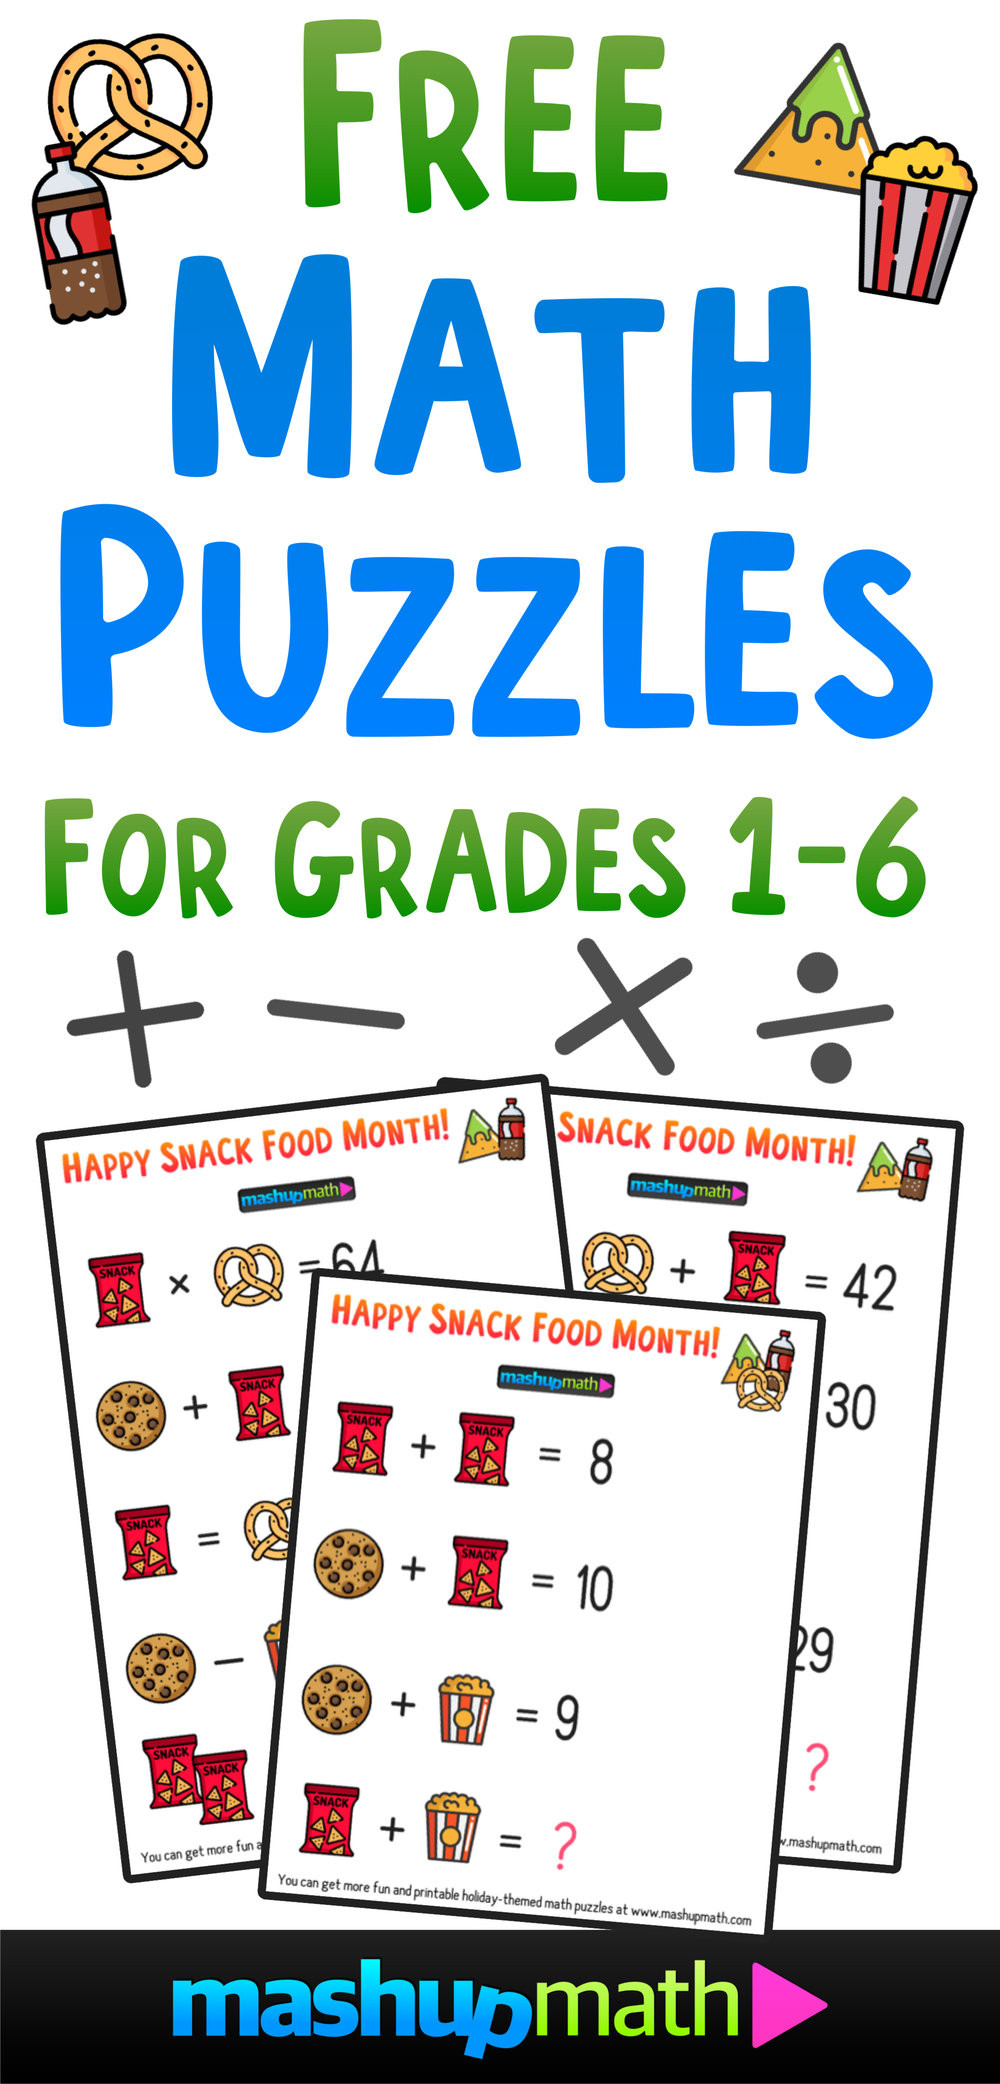 3rd Grade Brain Teasers Worksheets Free Math Brain Teaser Puzzles for Kids In Grades 1 6 to